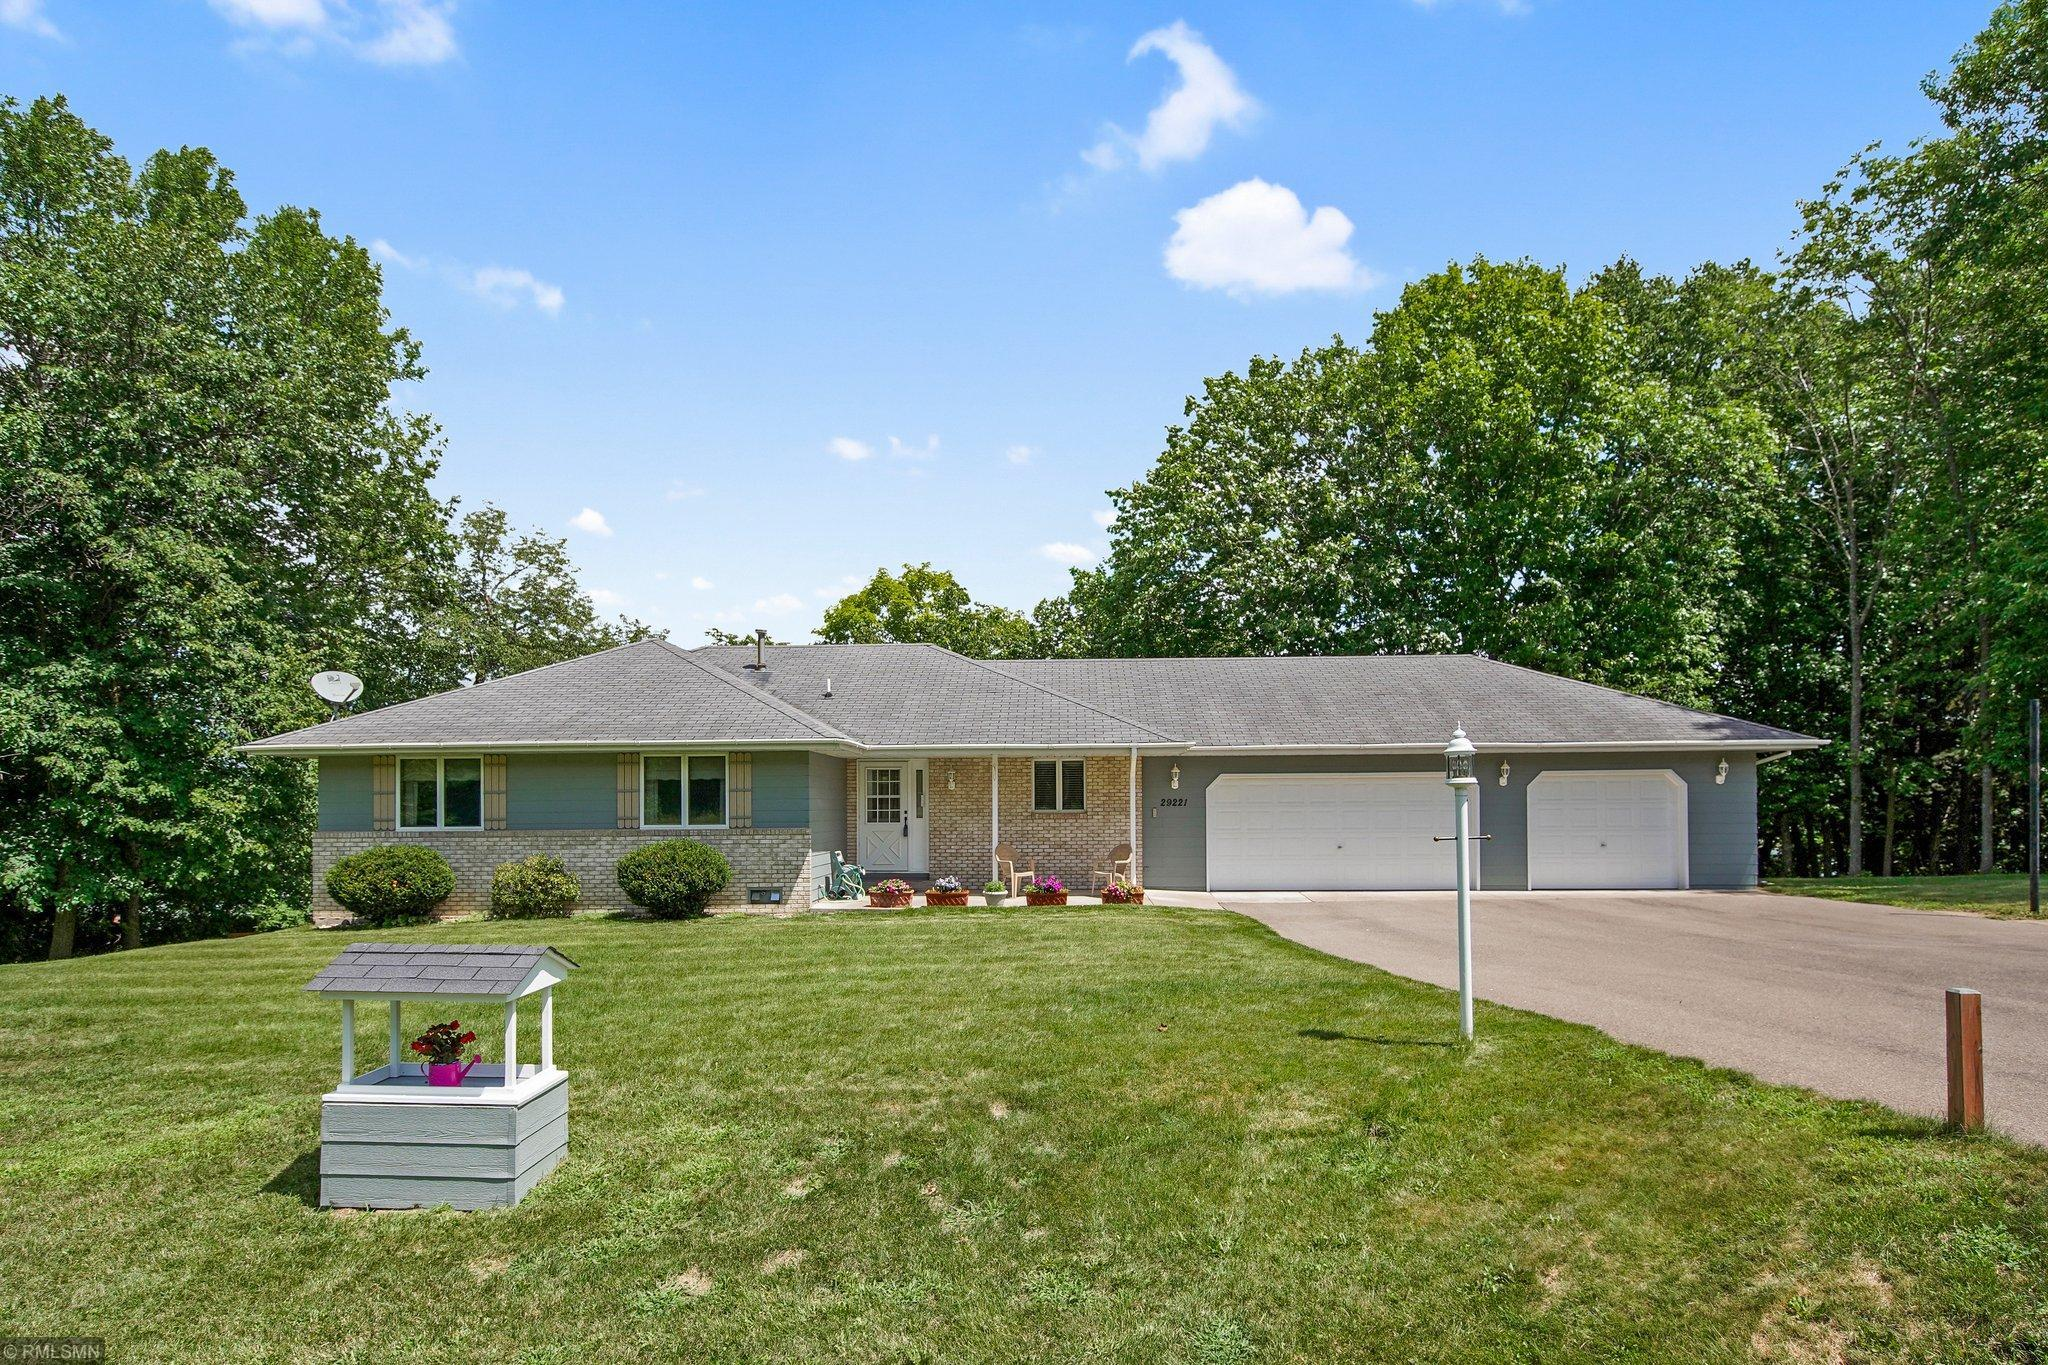 29221 Olympic Trail Property Photo - Lindstrom, MN real estate listing